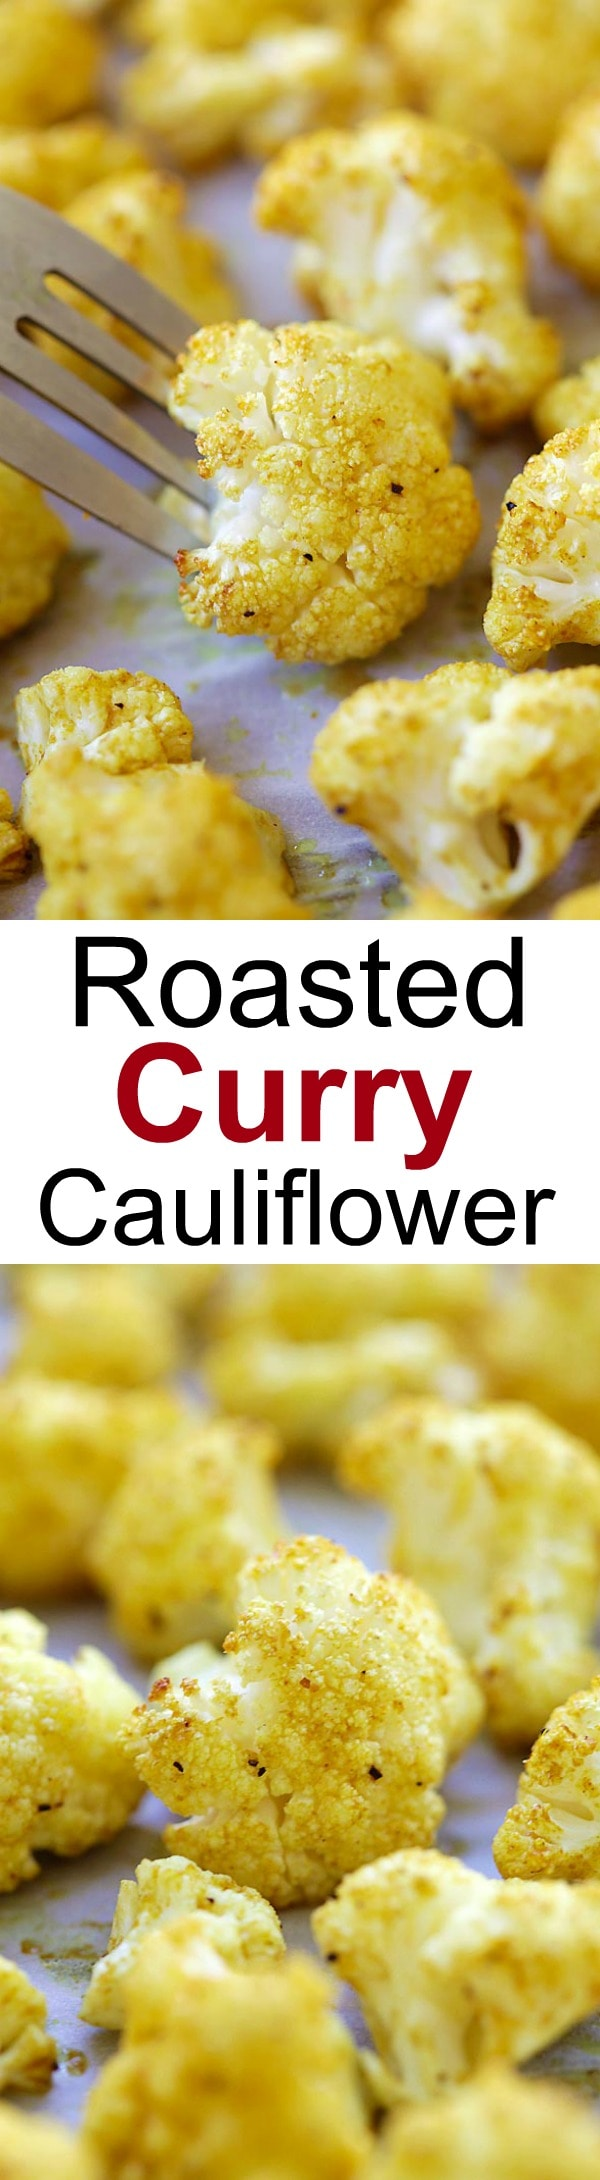 Roasted Curry Cauliflower – healthy roasted cauliflower with butter and curry powder. Takes 10 mins prep time for this amazing side dish   rasamalaysia.com